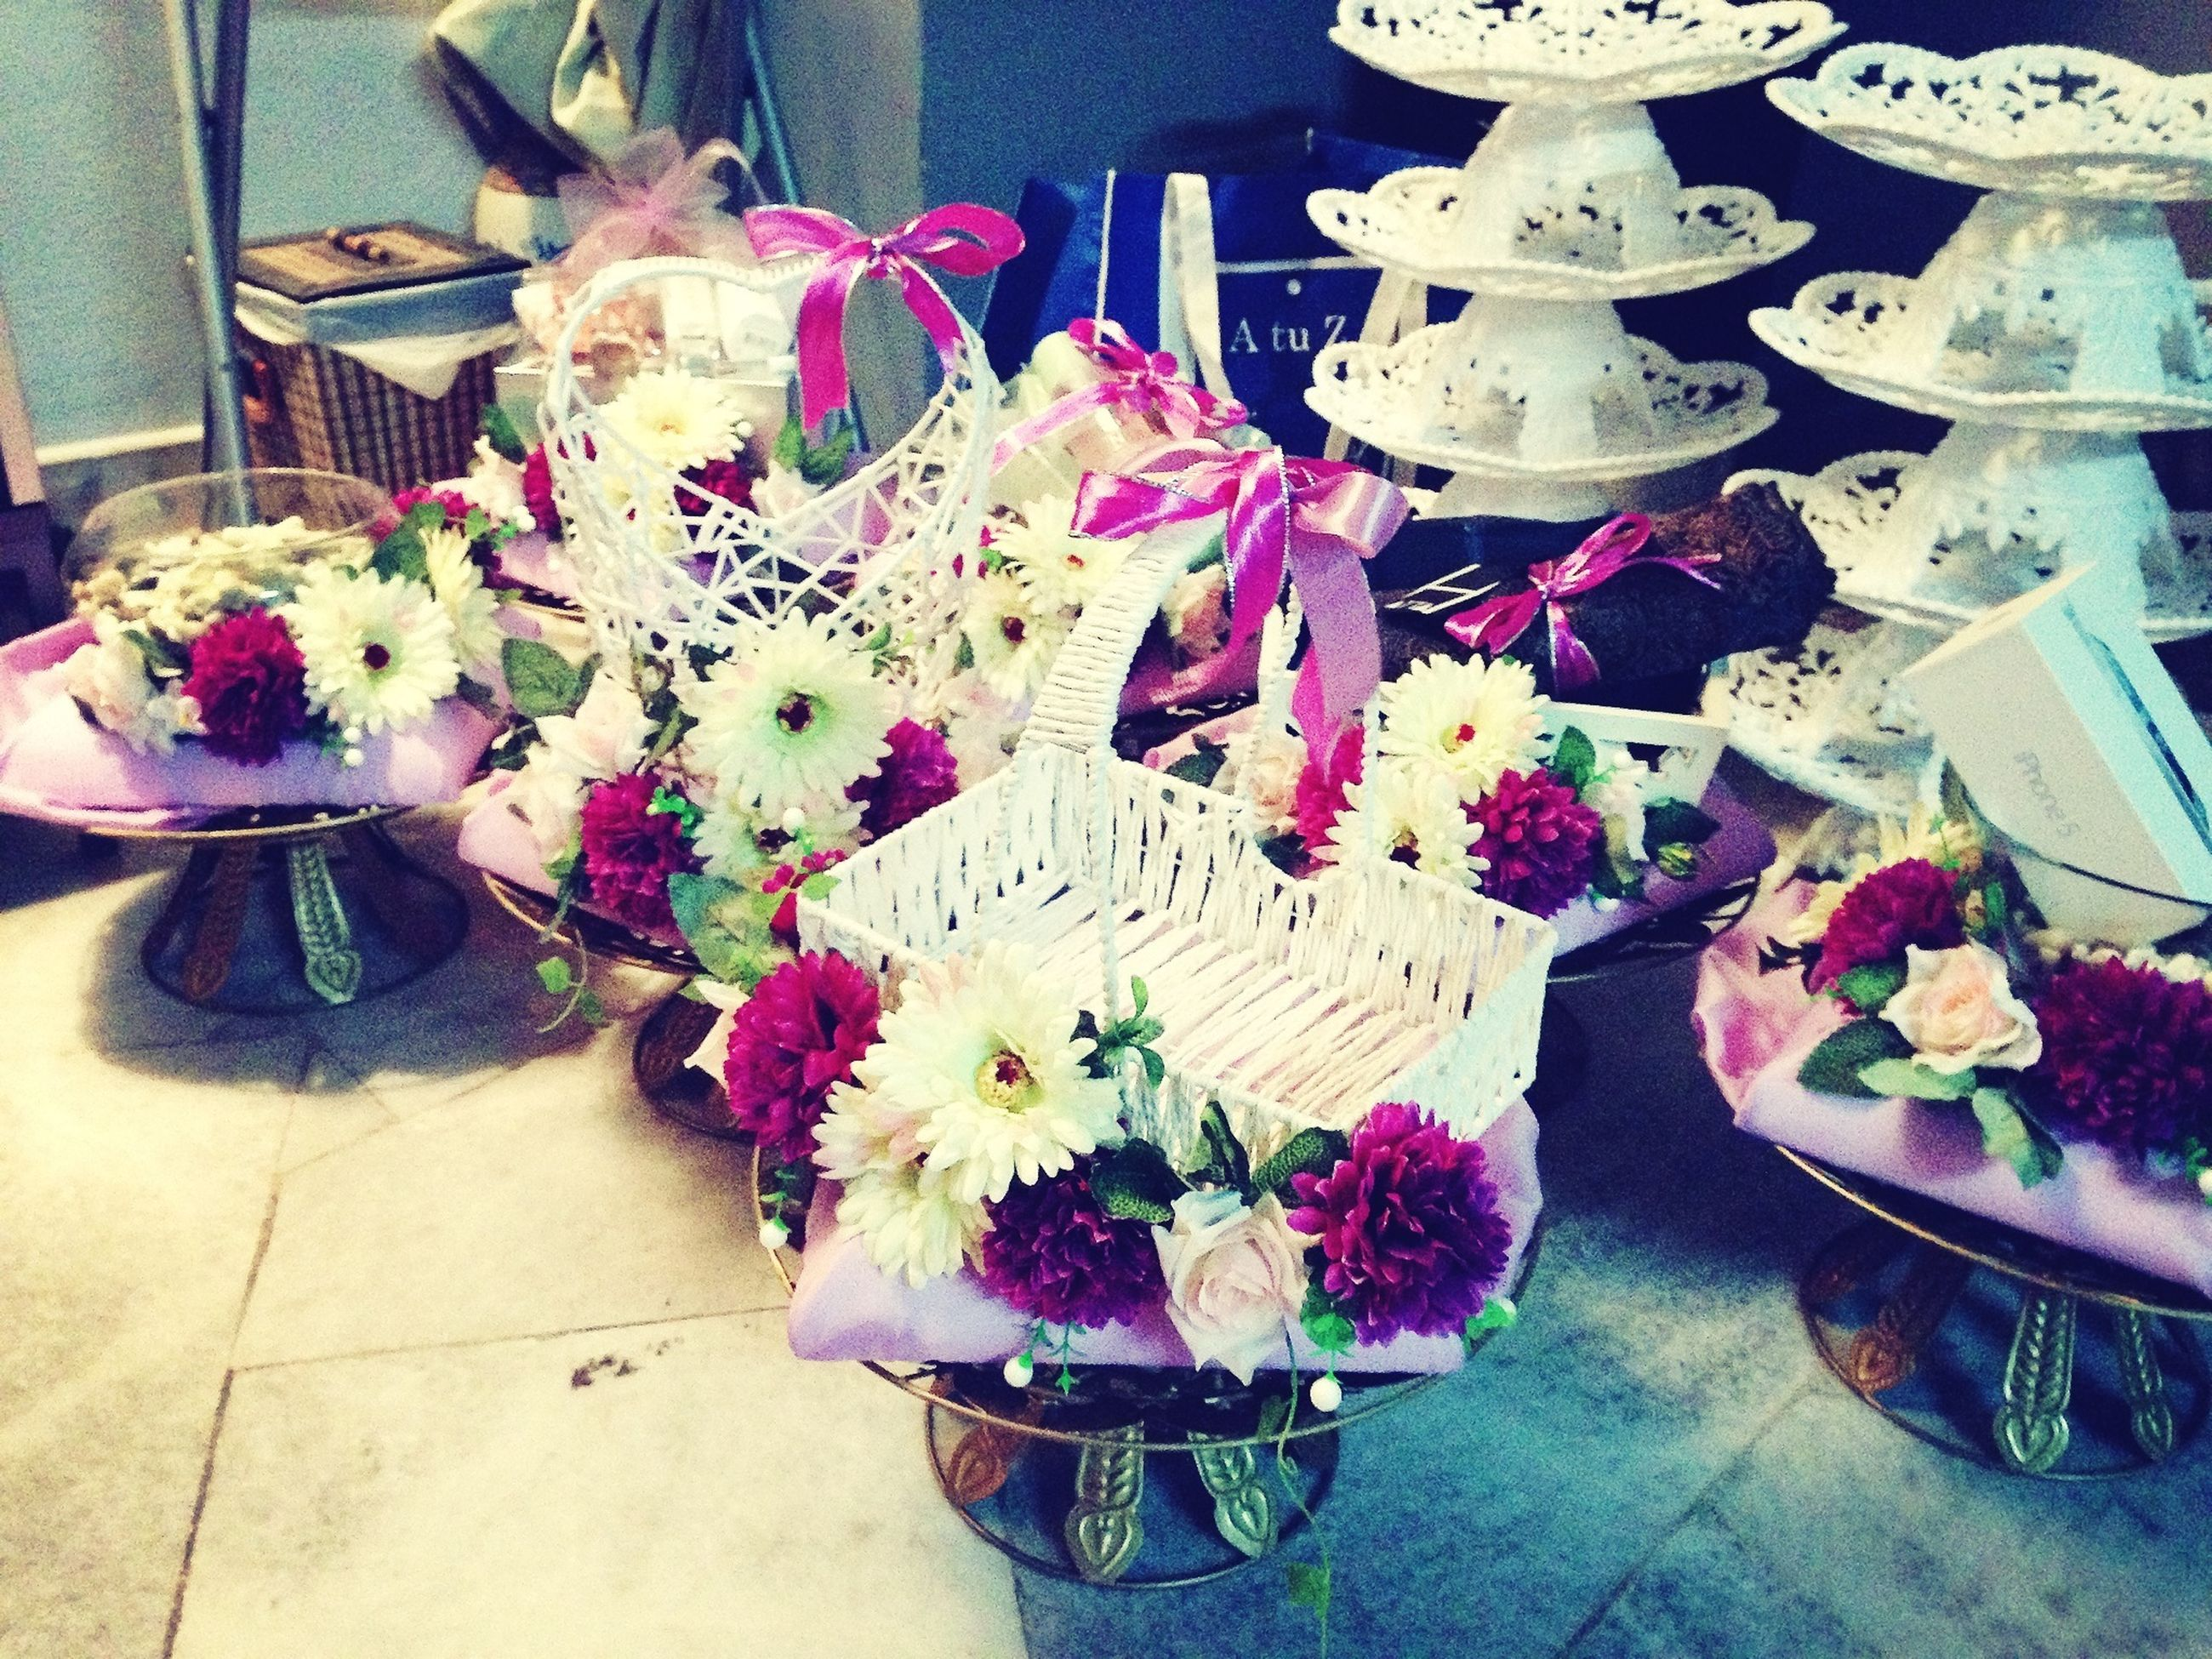 flower, indoors, freshness, decoration, vase, bouquet, variation, petal, potted plant, multi colored, fragility, high angle view, bunch of flowers, table, flower arrangement, flower pot, plant, arrangement, pink color, flower head